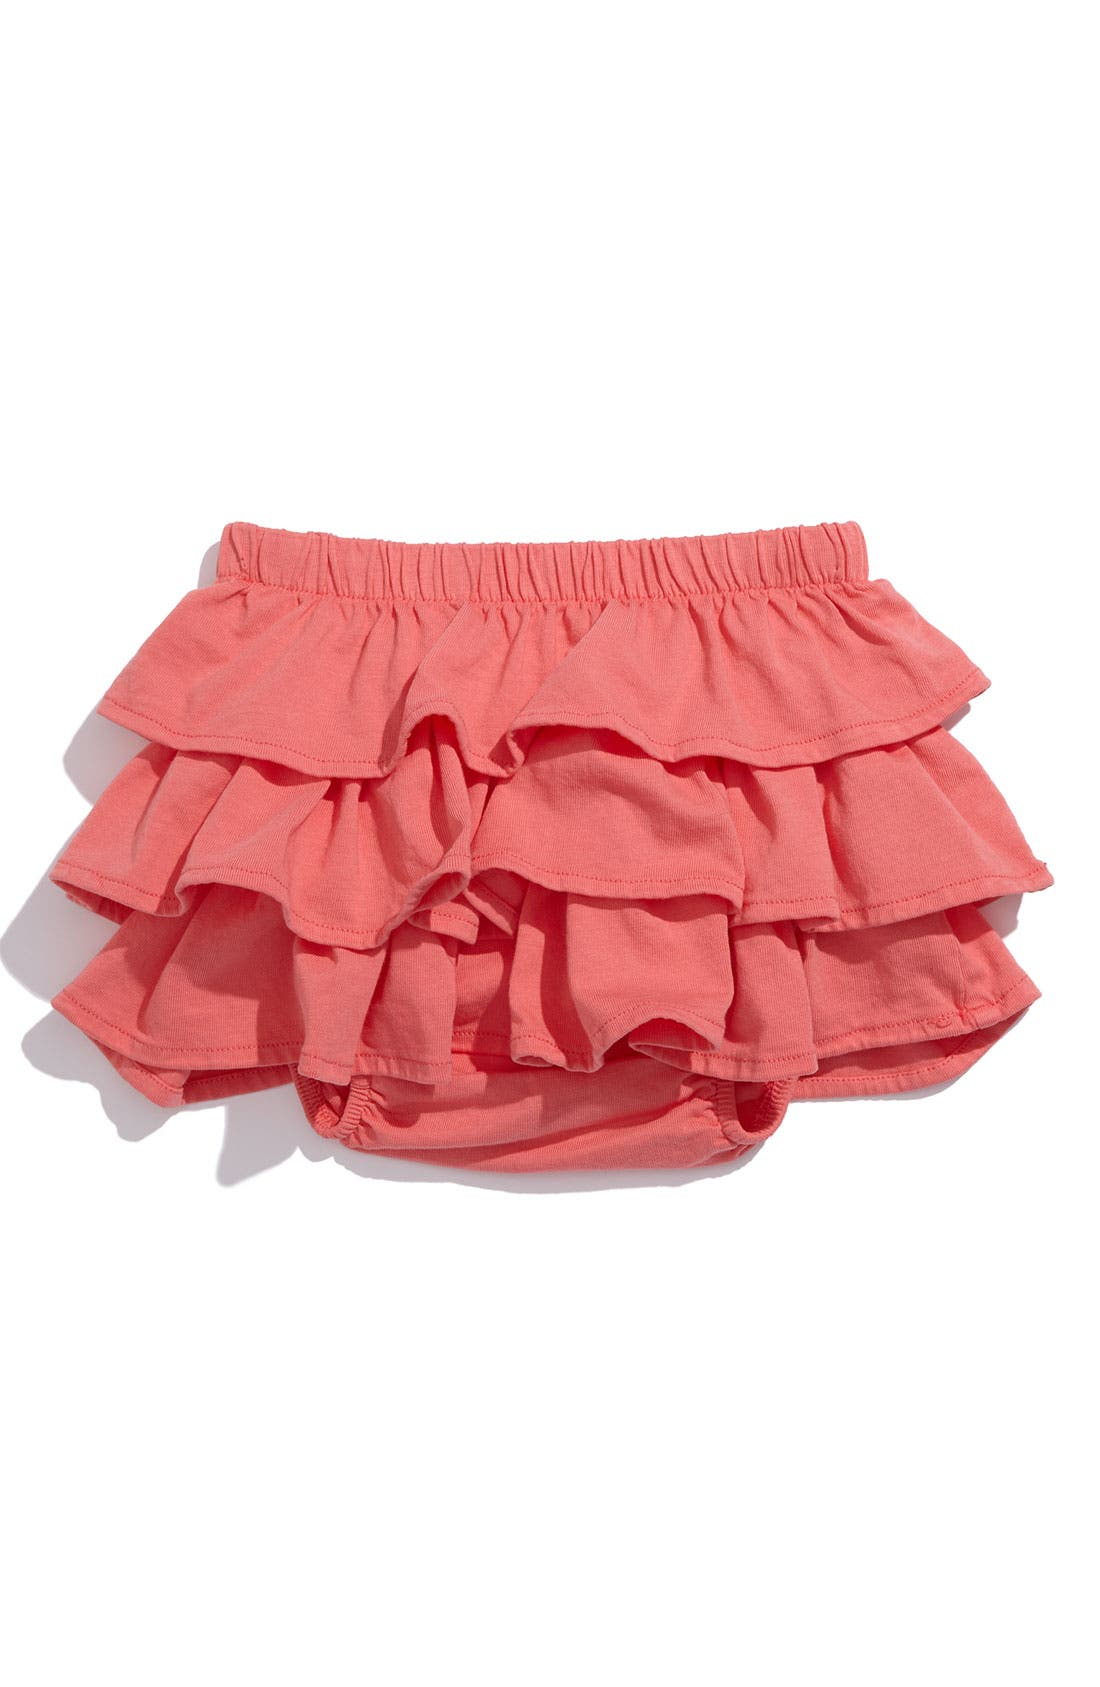 Main Image - Peek 'Evie' Ruffle Tier Skirted Bloomers (Infant)